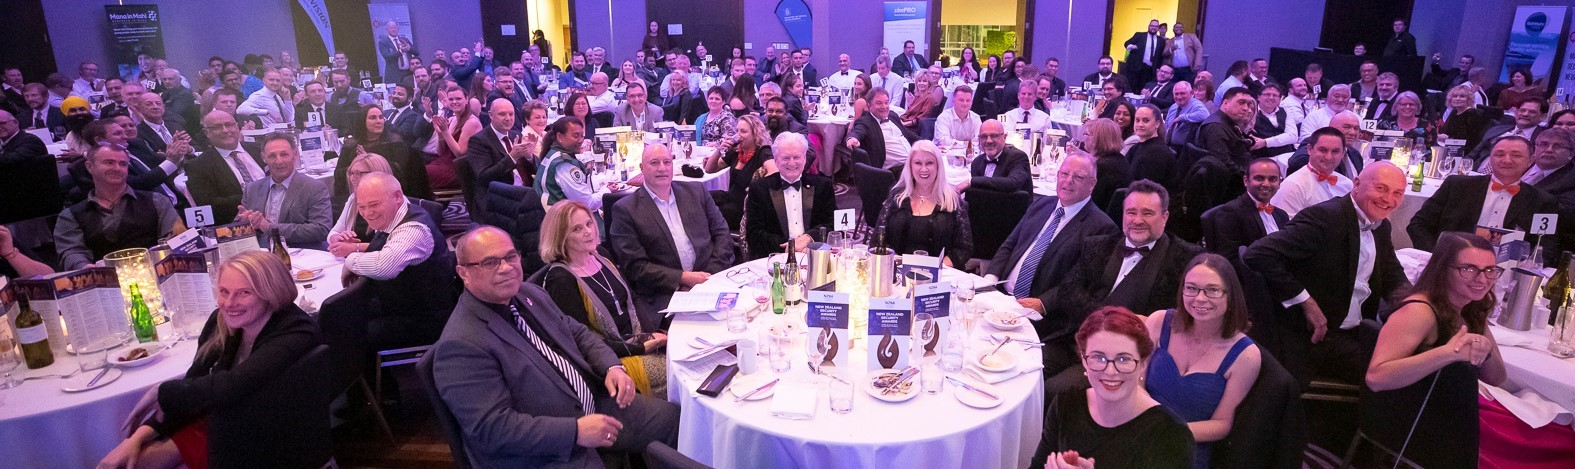 The attendees at the NZSA Awards night 23 August 2019